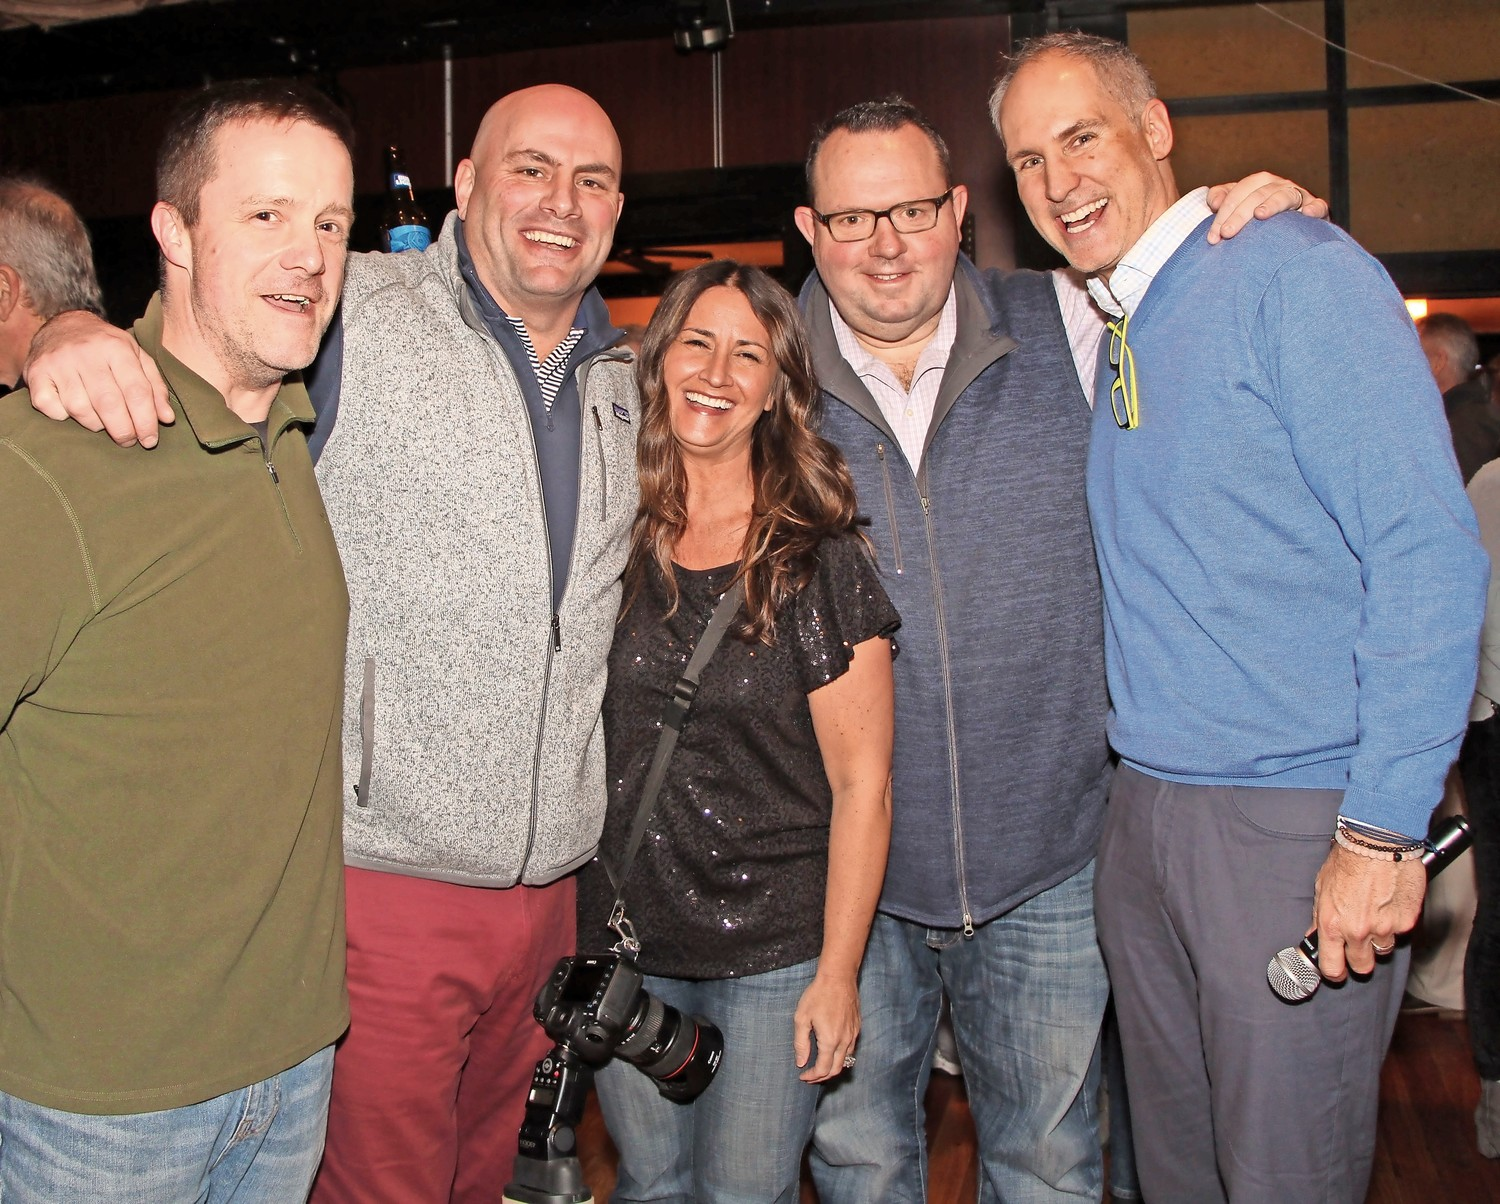 Michael McEnerney, left, Lisa Hyland, John Noak, Chris Johnson and Kerry Keating organized the fundraising event for their childhood friend Sean O'Brien.